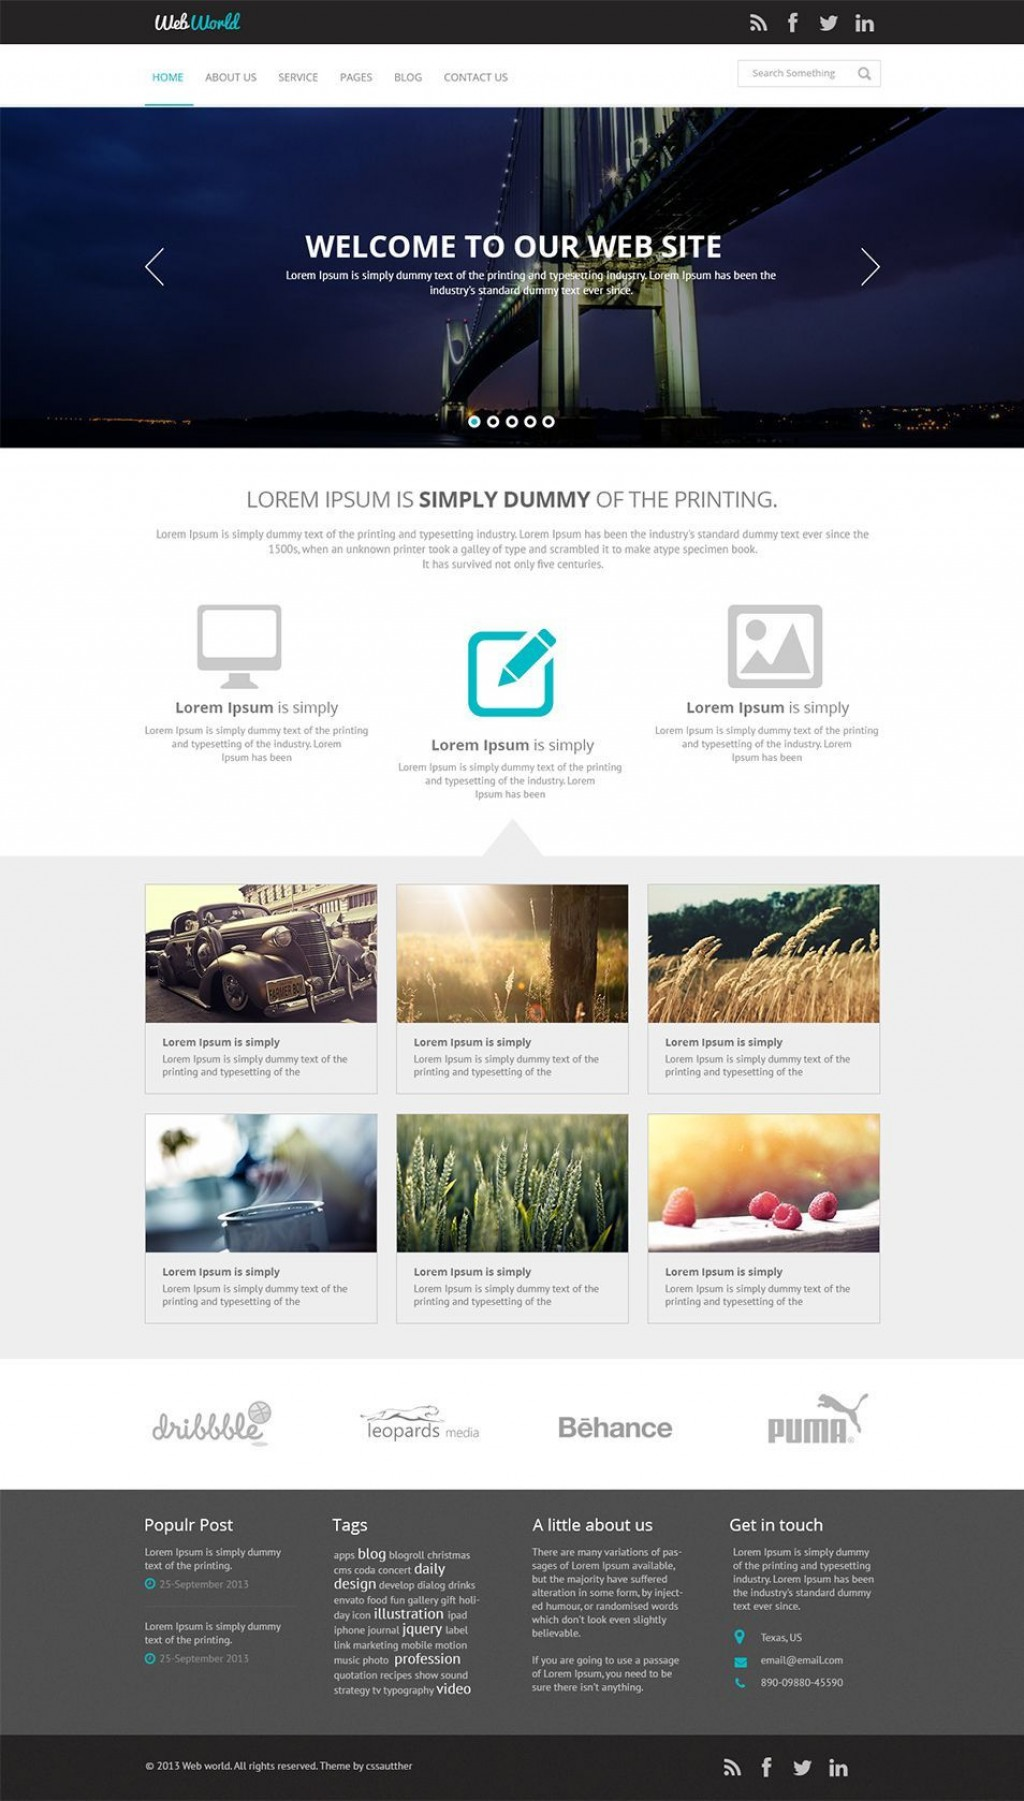 001 Dreaded Free Cs Professional Website Template Download Image  Html With JqueryLarge